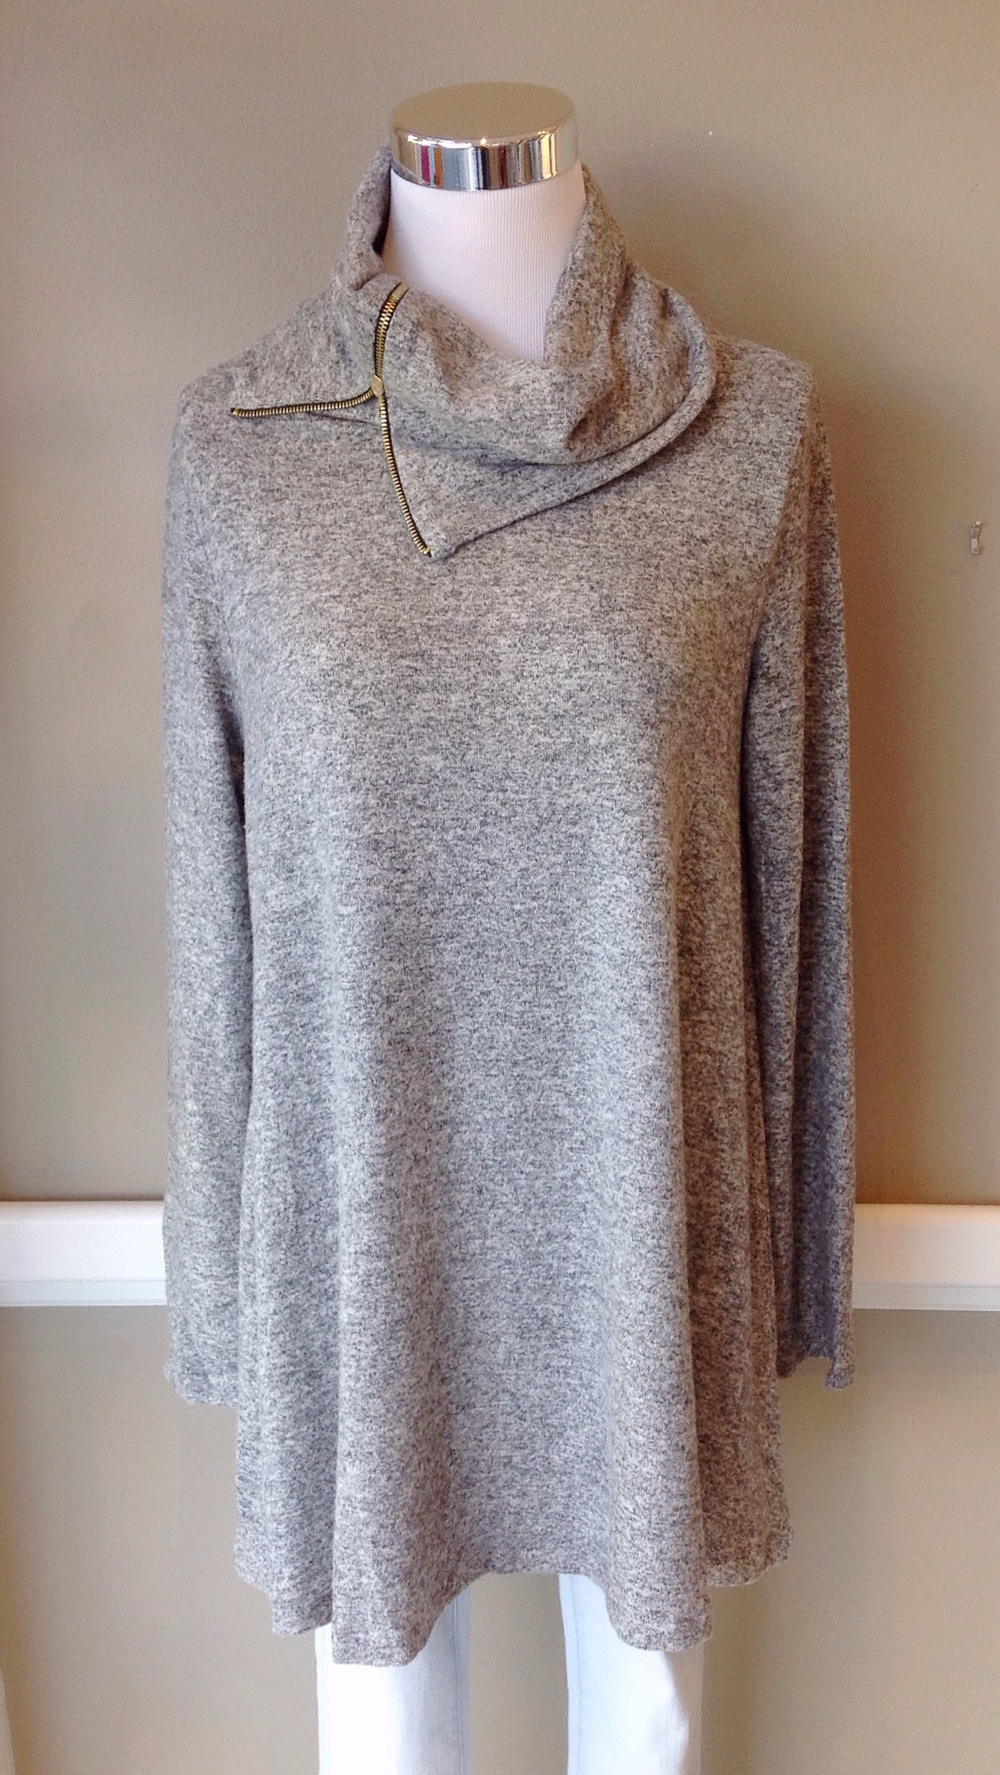 A-line cowl neck sweater with zipper n heather grey, $38